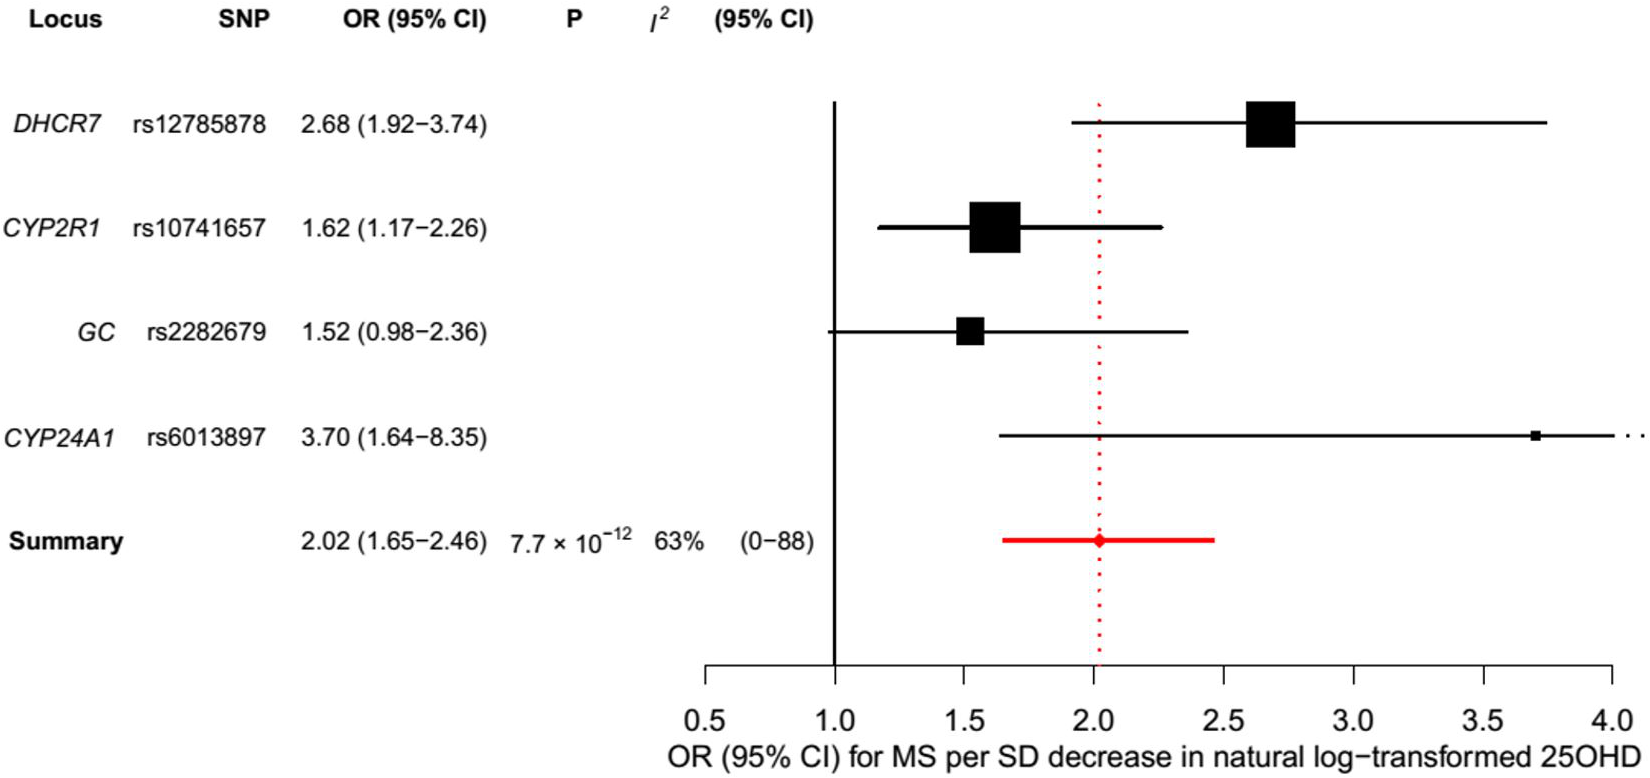 Mendelian randomization estimate of the association of 25OHD level with risk of multiple sclerosis.